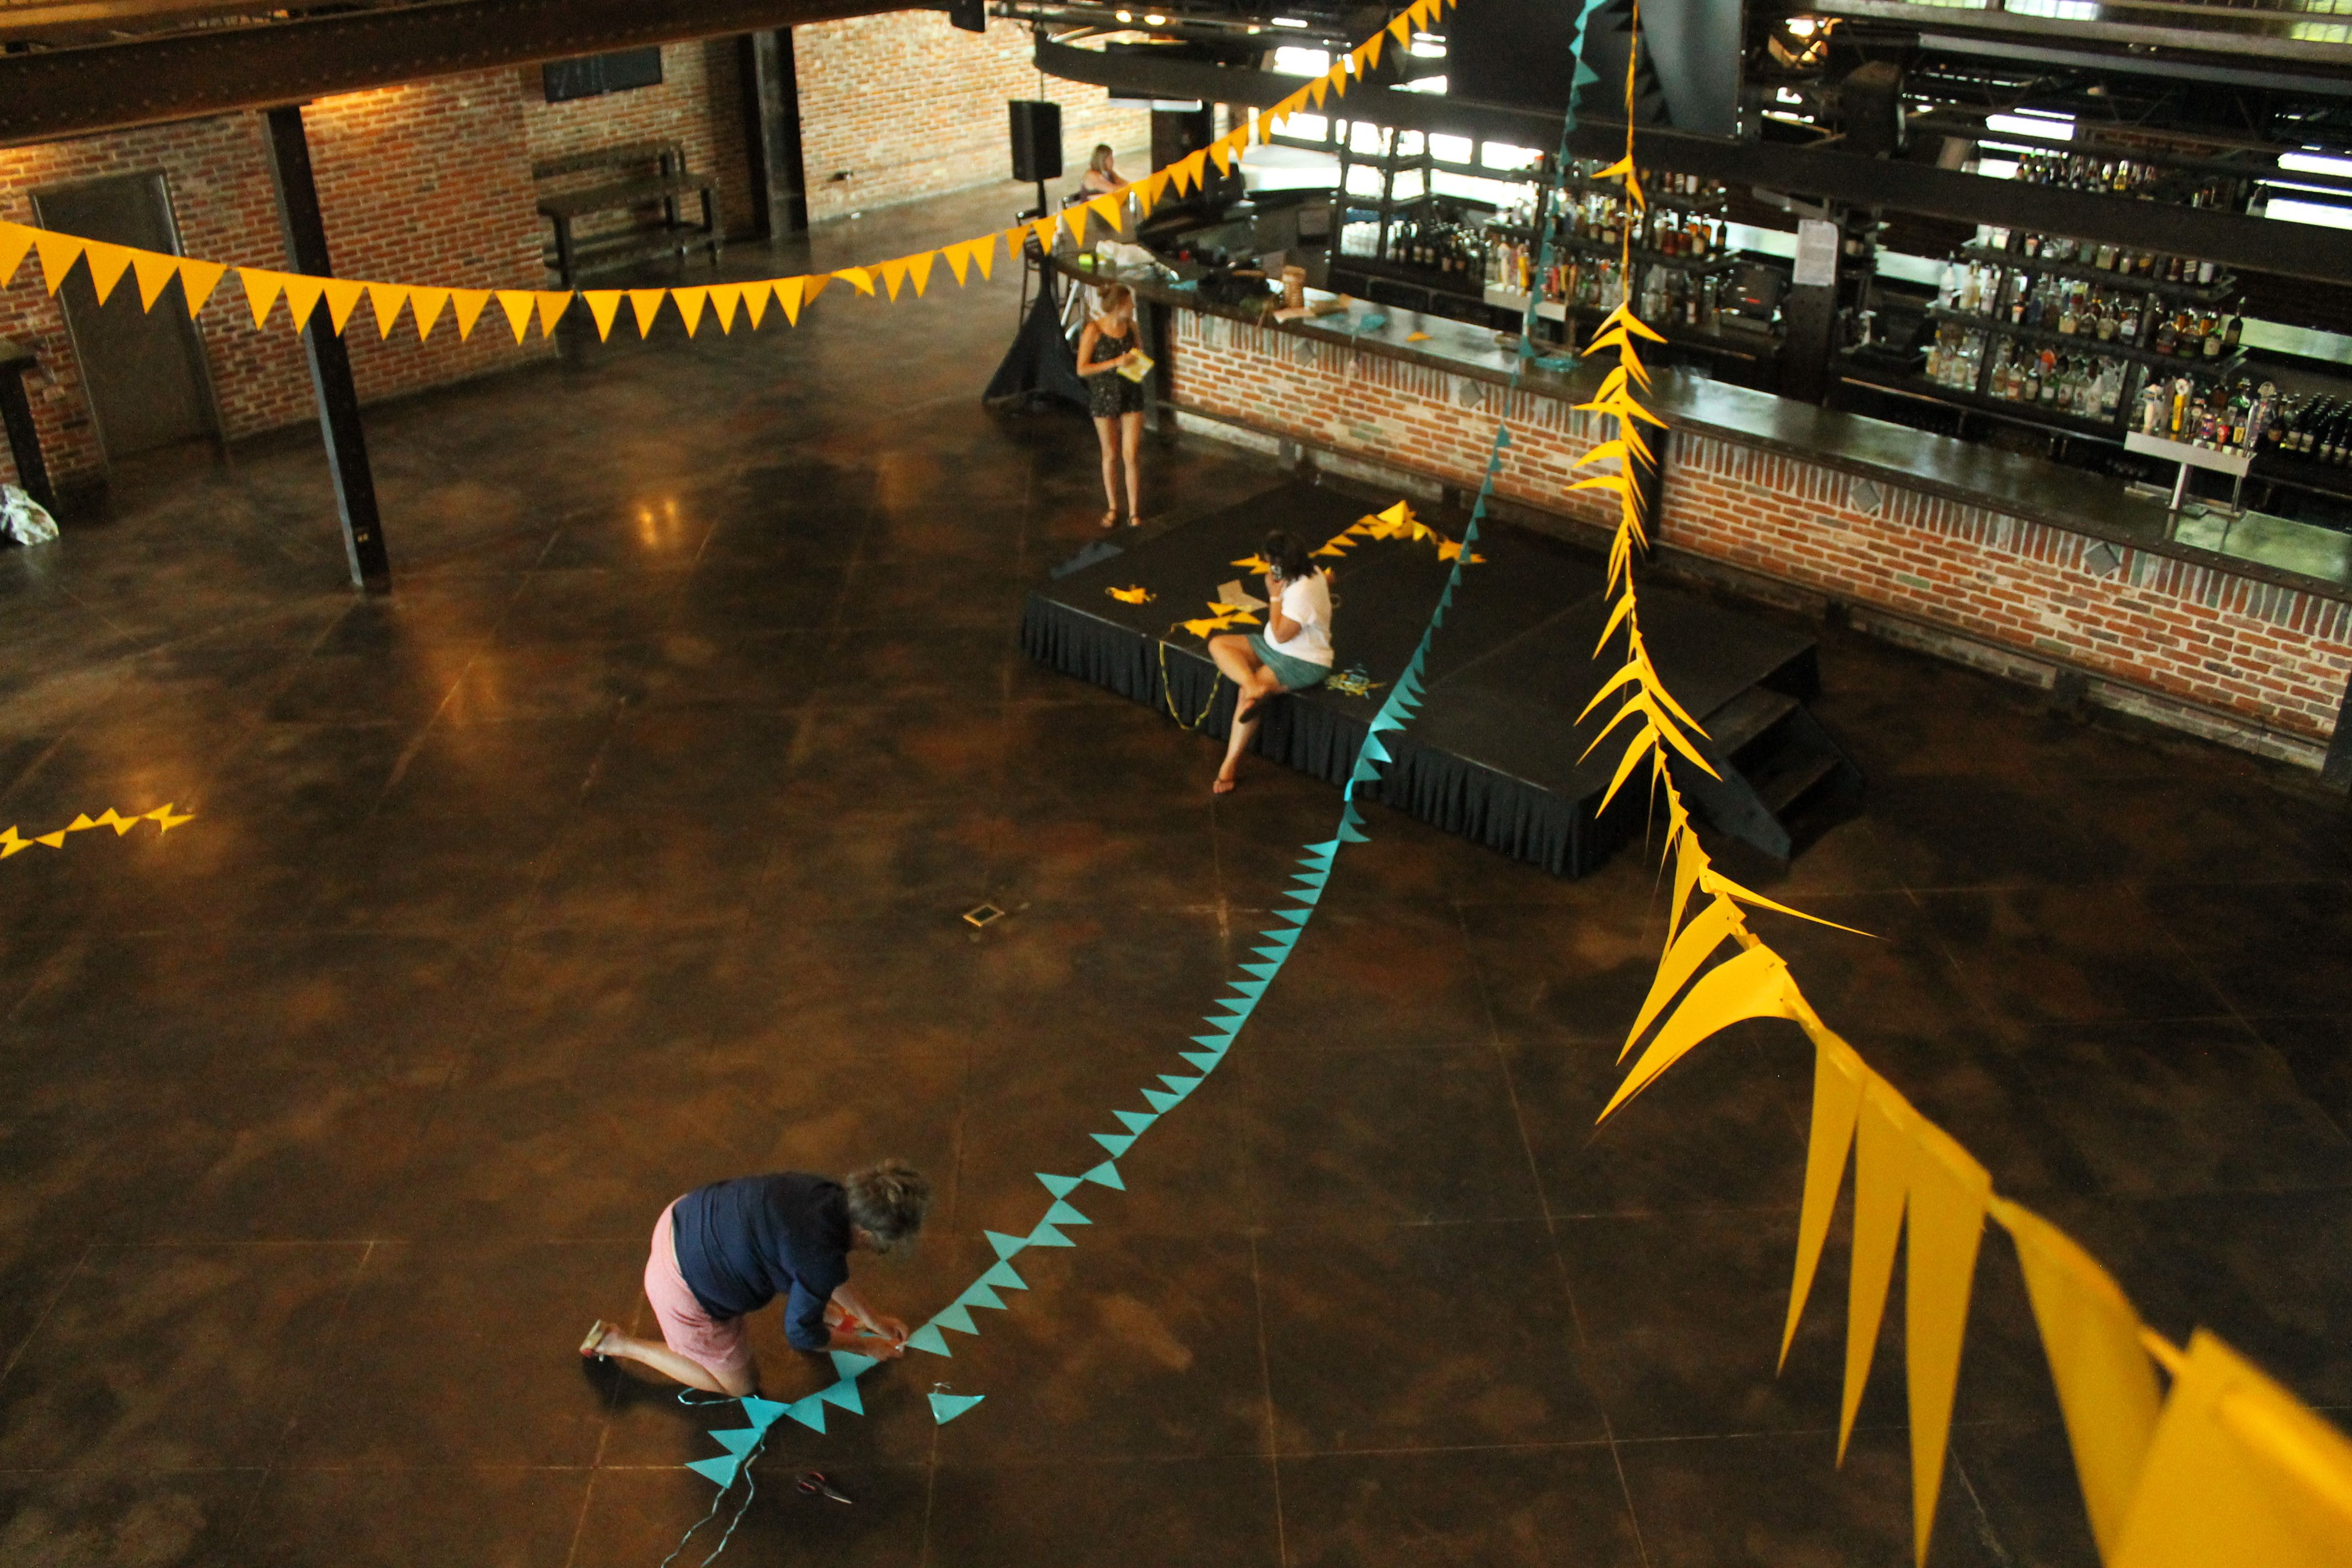 Woman kneels on ground; she is putting together yellow and turquoise flags, some of which hang from the ceiling above her